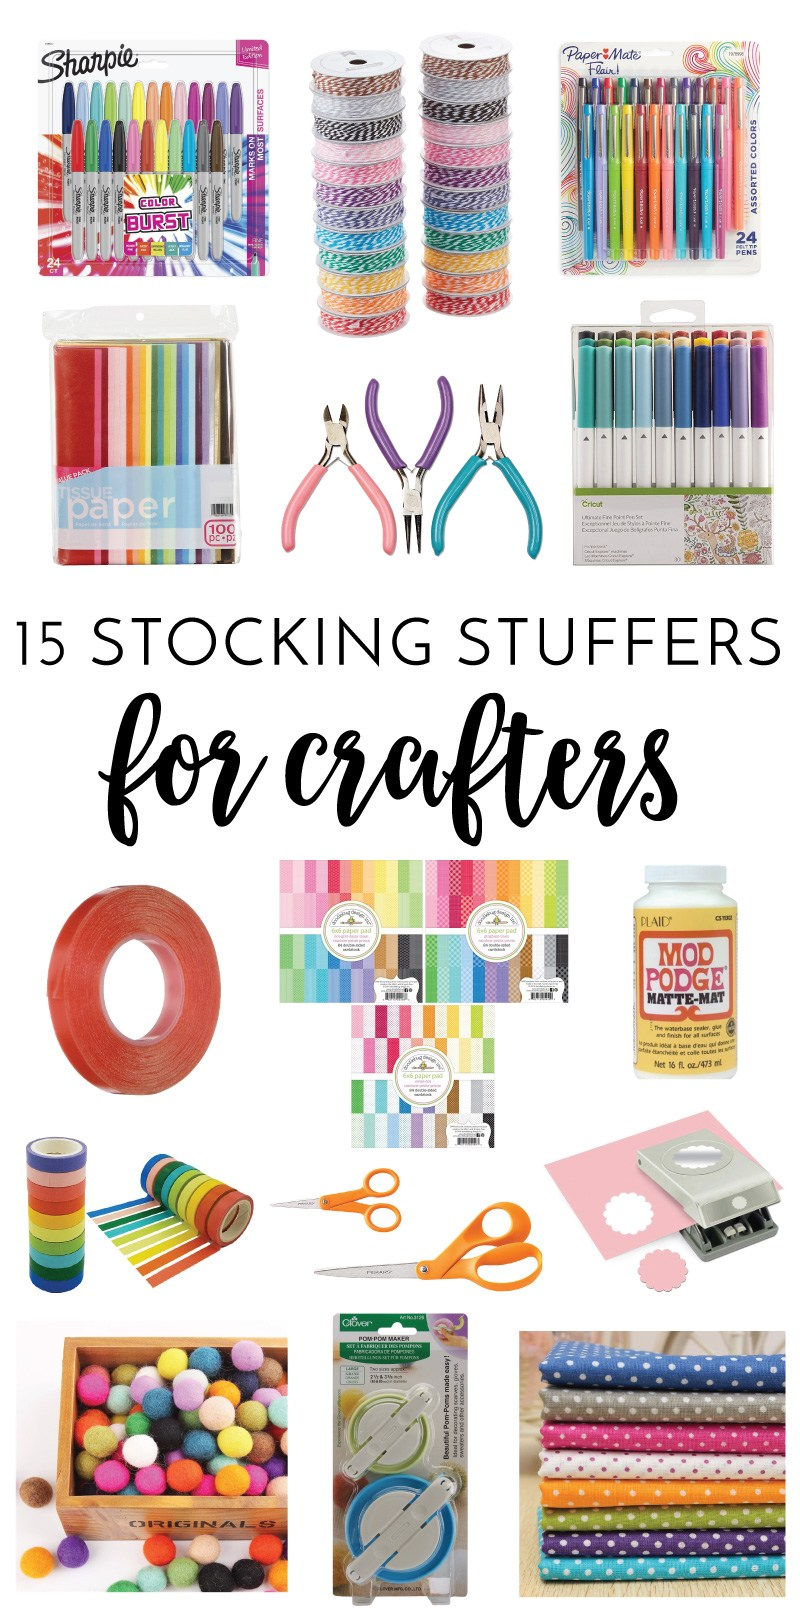 15 Stocking Stuffers for Crafters on Love the Day